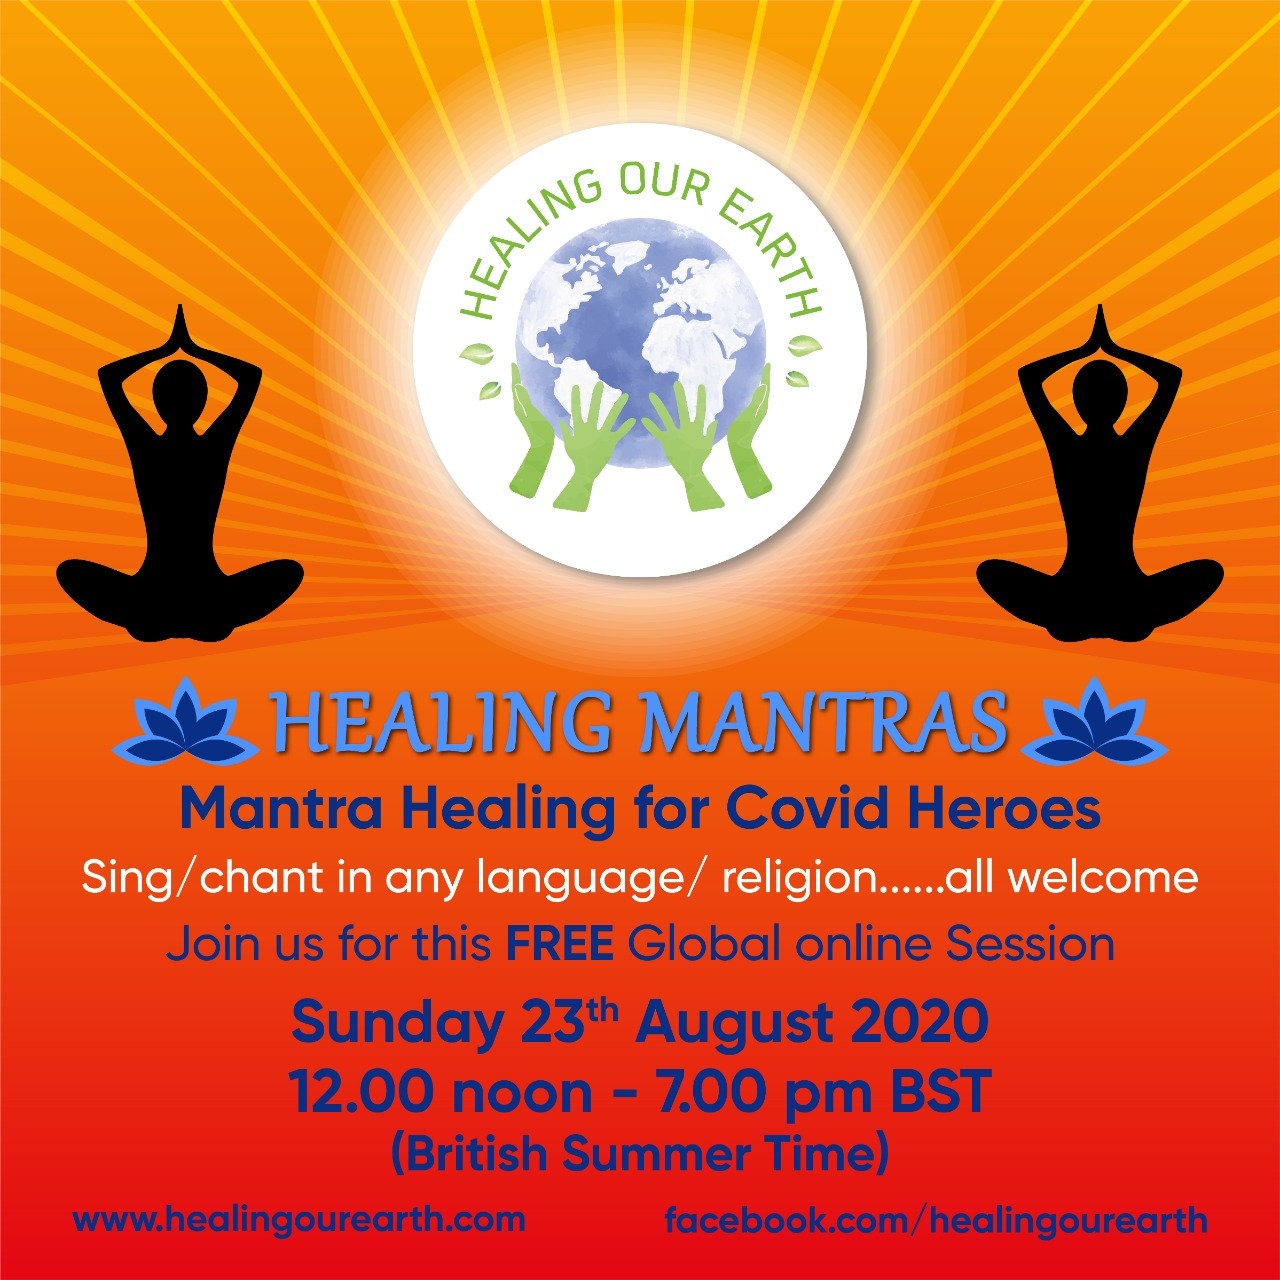 Mantra Healing fror Covid Heroes - 23rd Aug 2020 - 12noon to 7pm